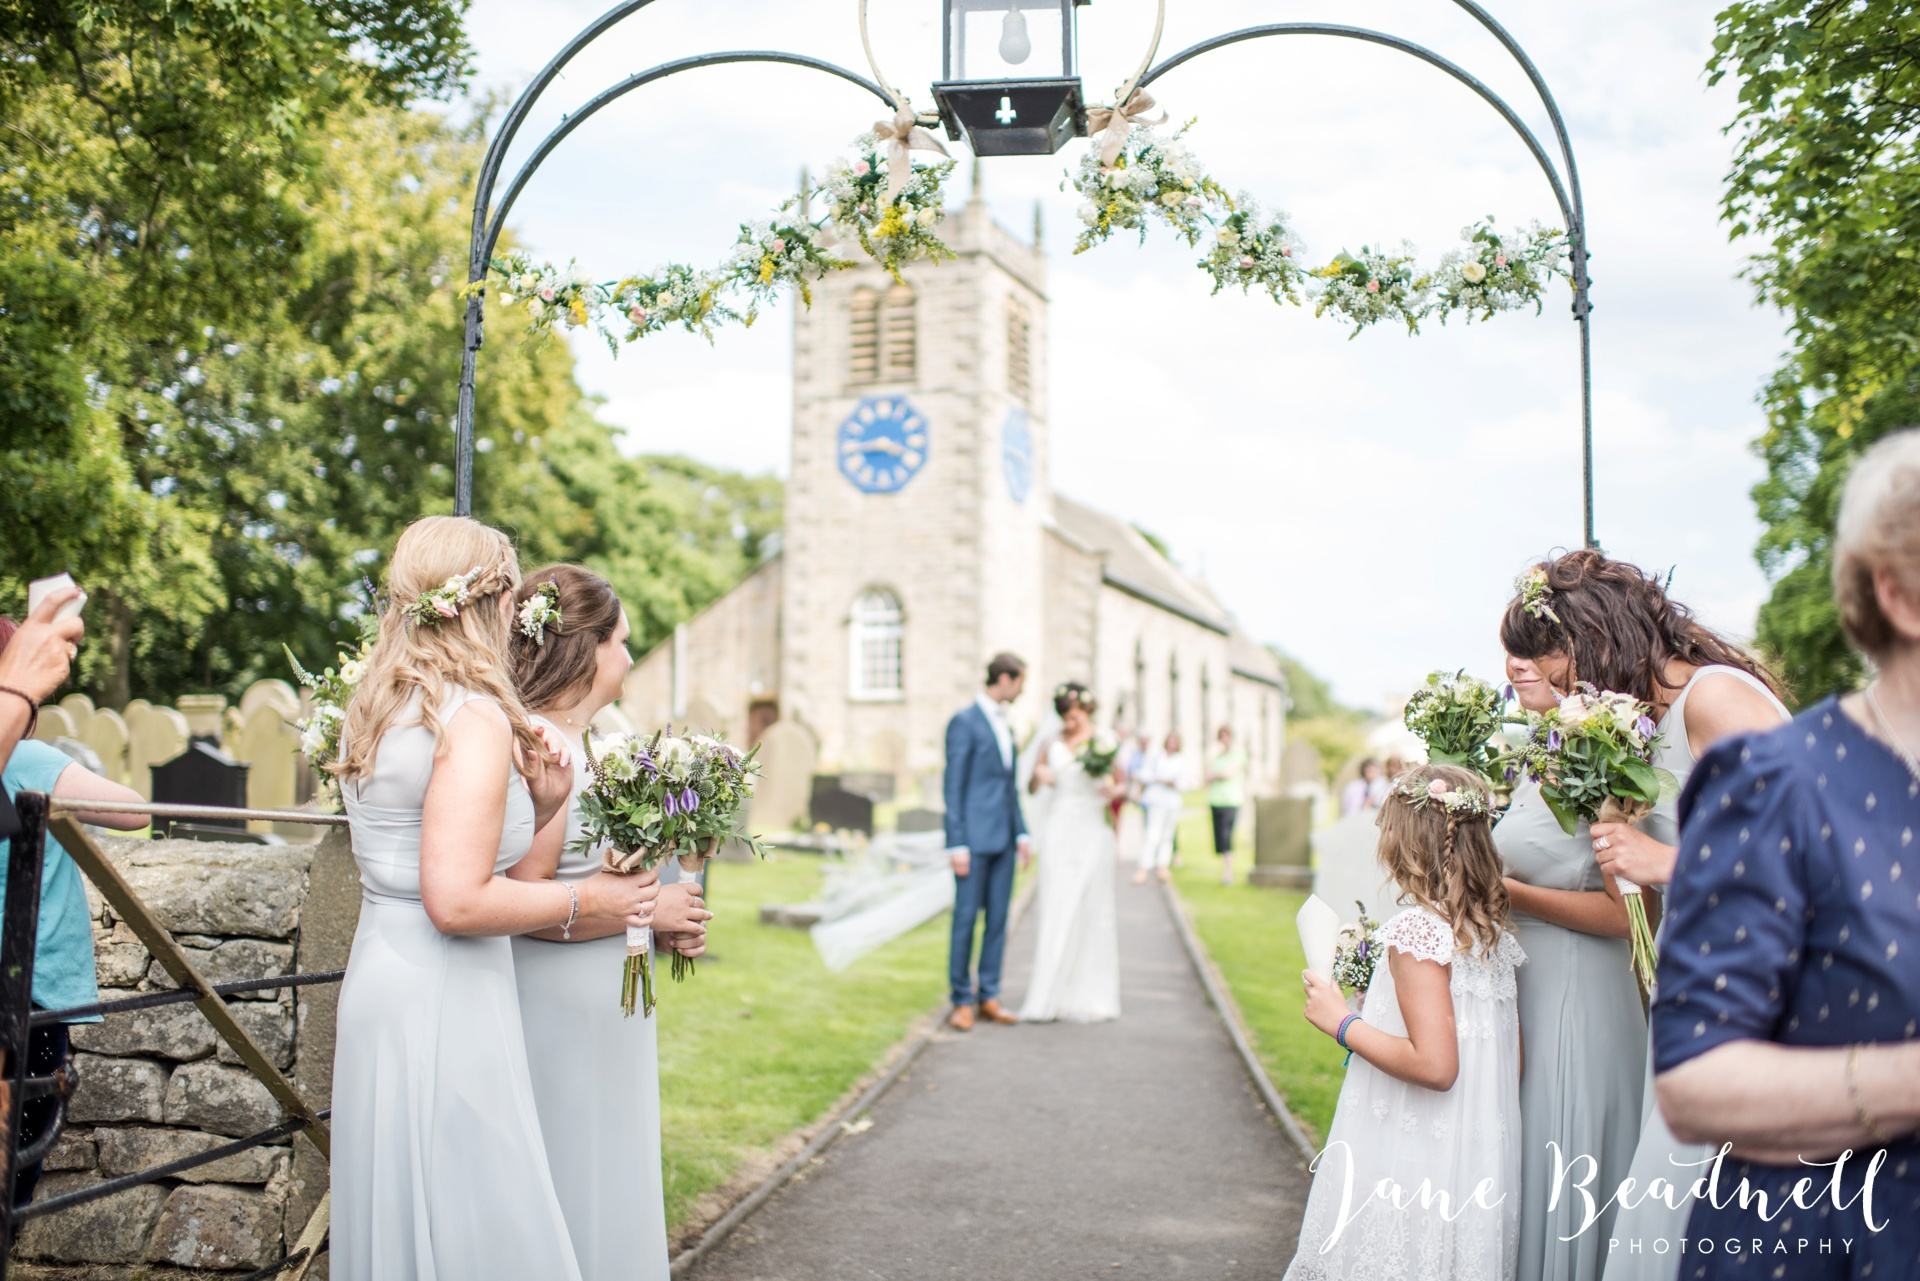 Jane Beadnell fine art wedding photographer Leeds_0052